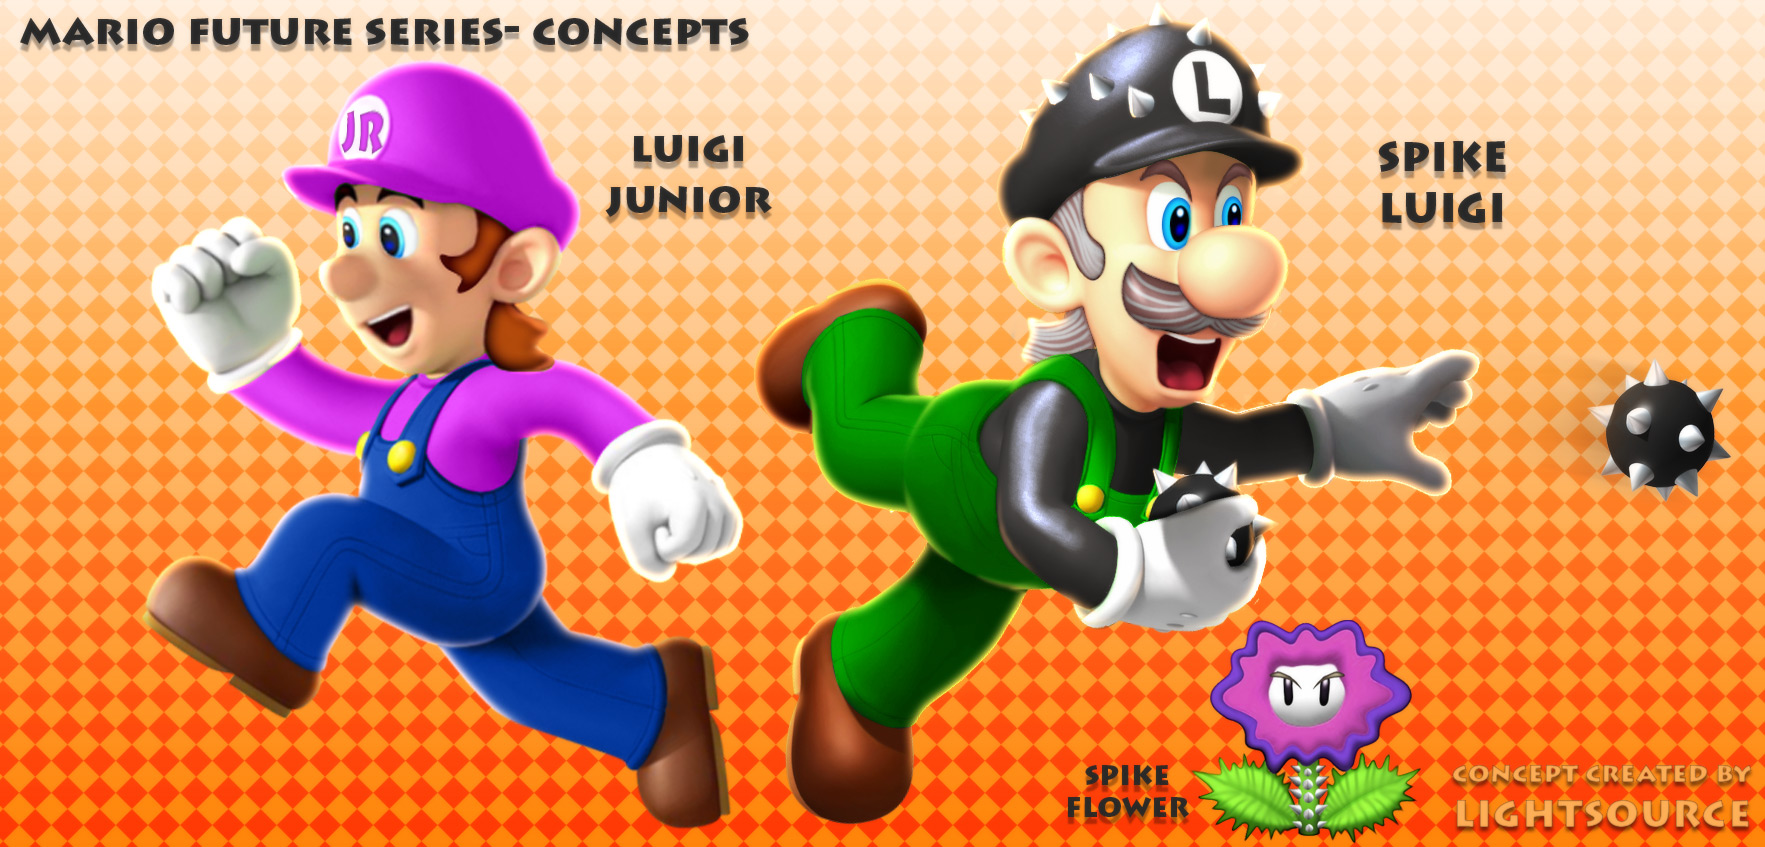 Future Luigi and son